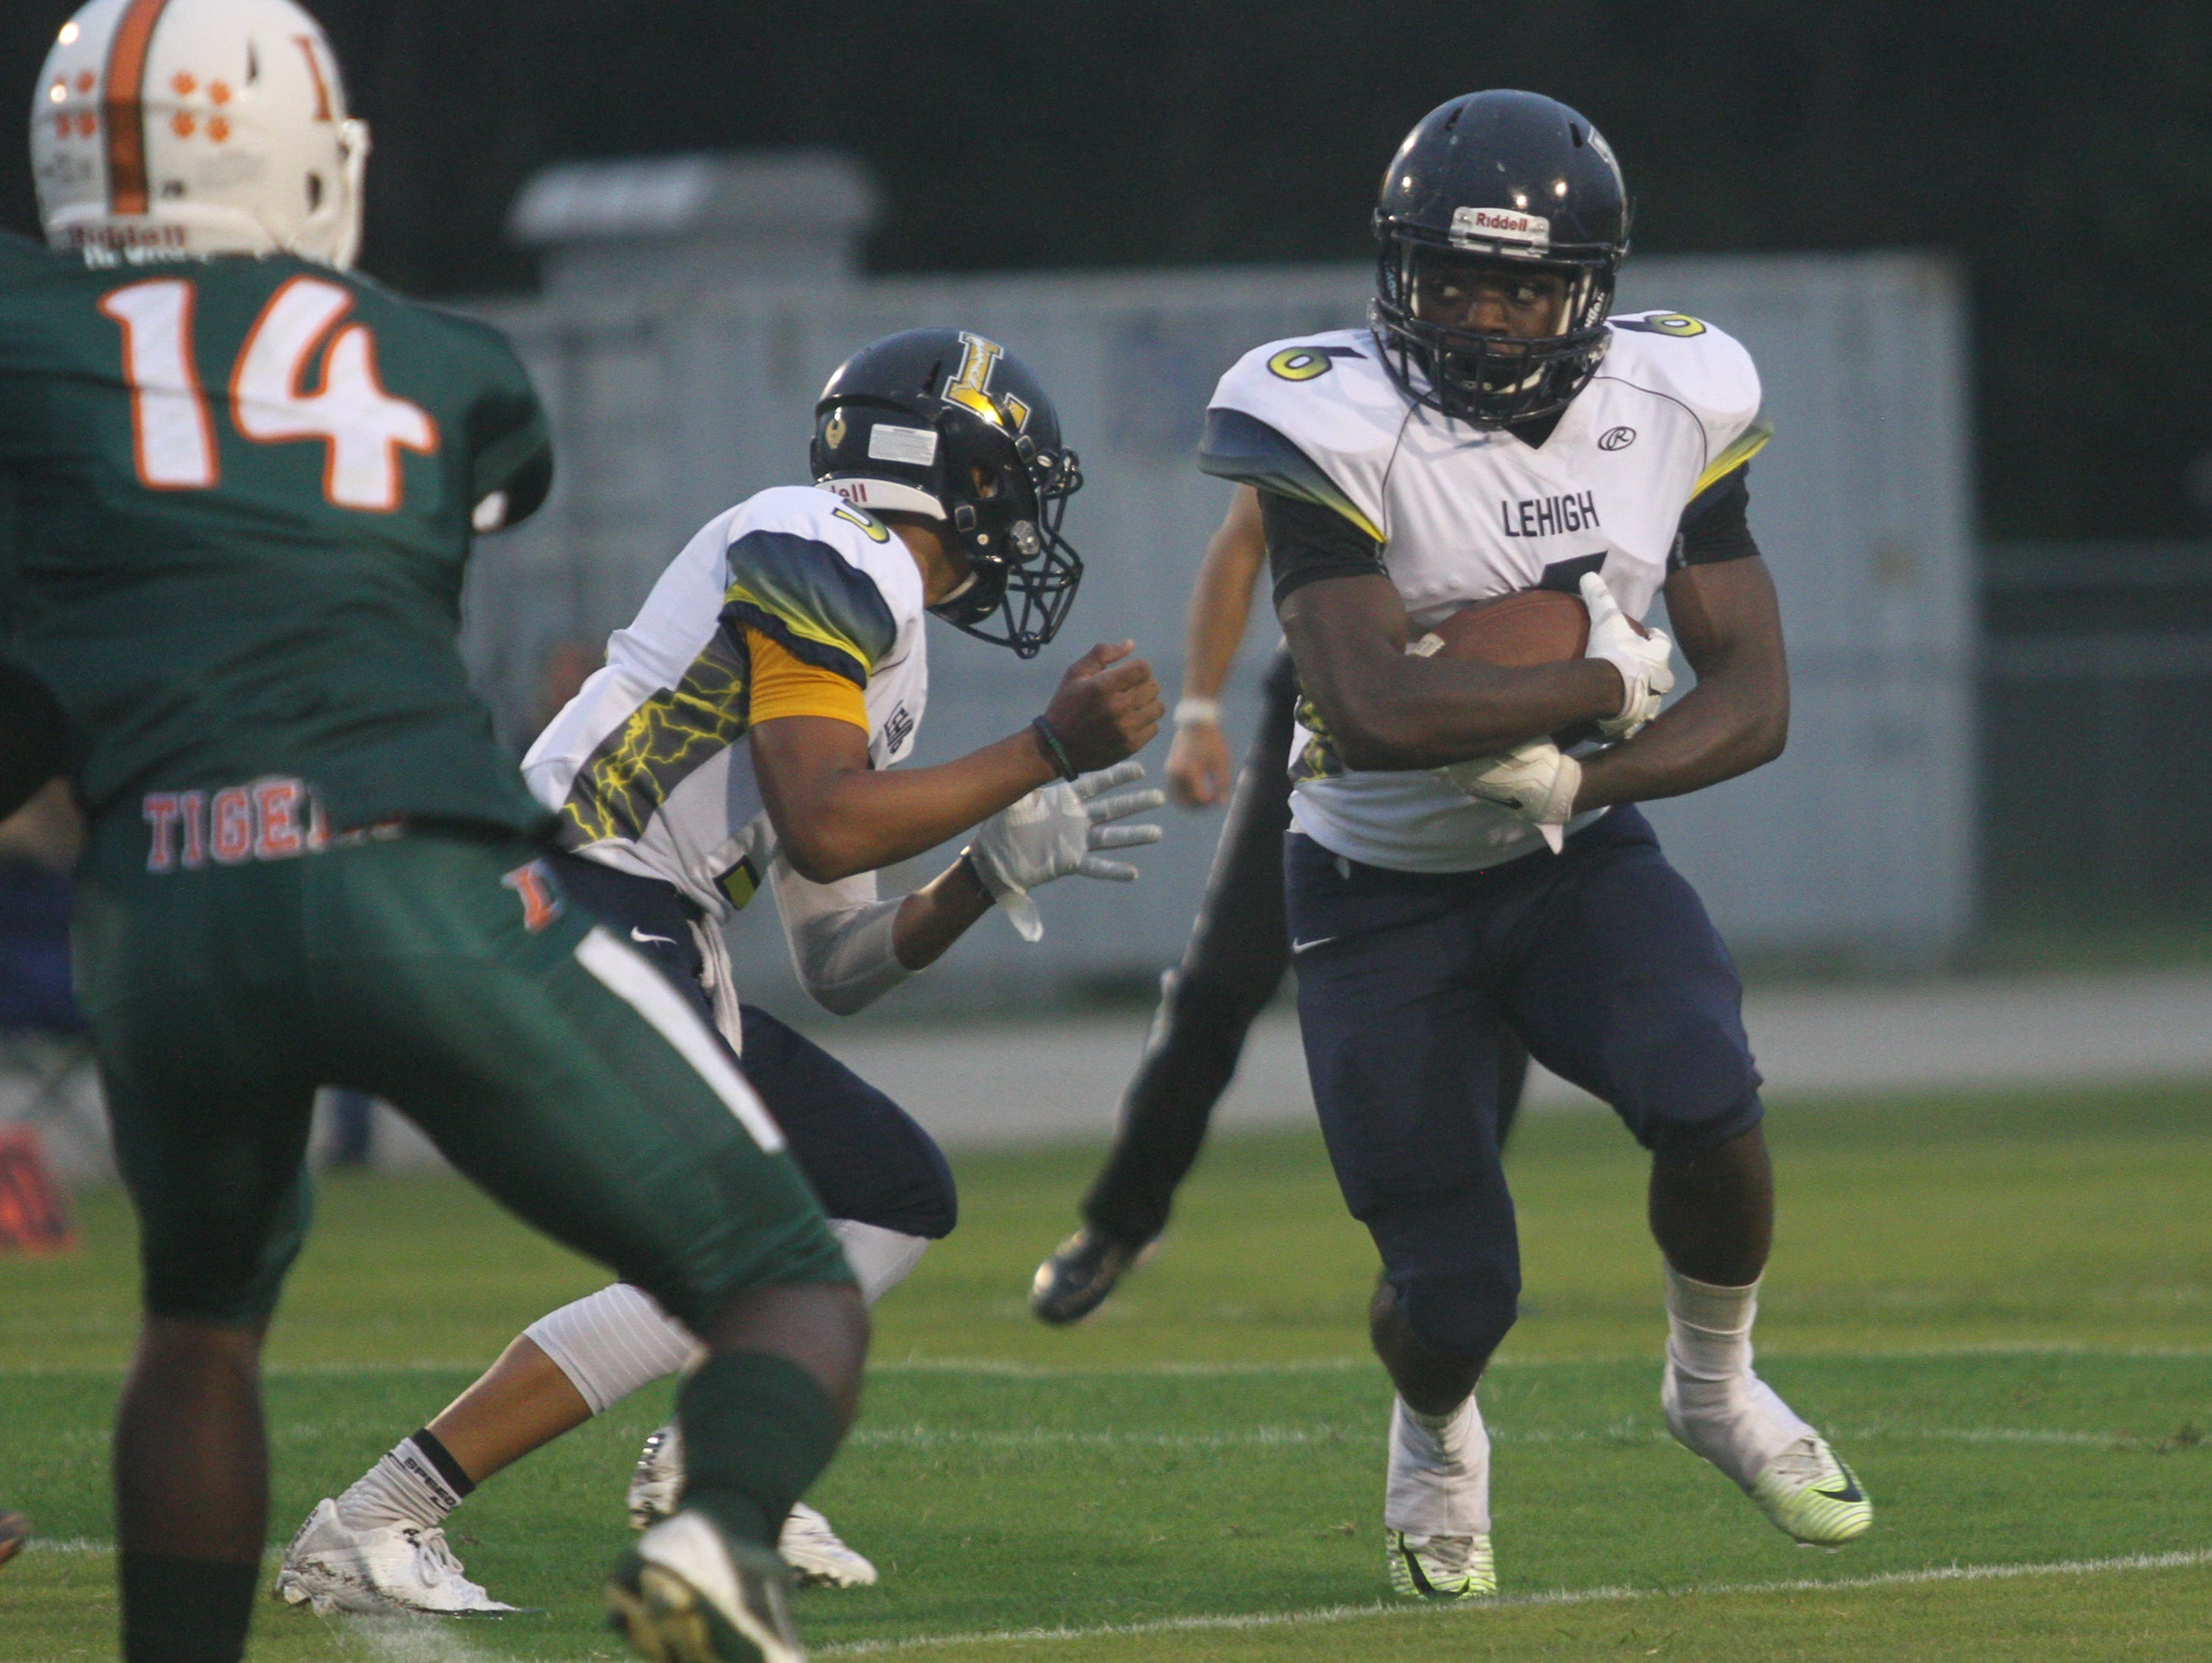 Lehigh running back Jalane Nelson carries the ball during the Lightning's 28-0 loss to Dunbar last week. Lehigh travels to South Fort Myers on Friday for The News-Press' Game of the Week.